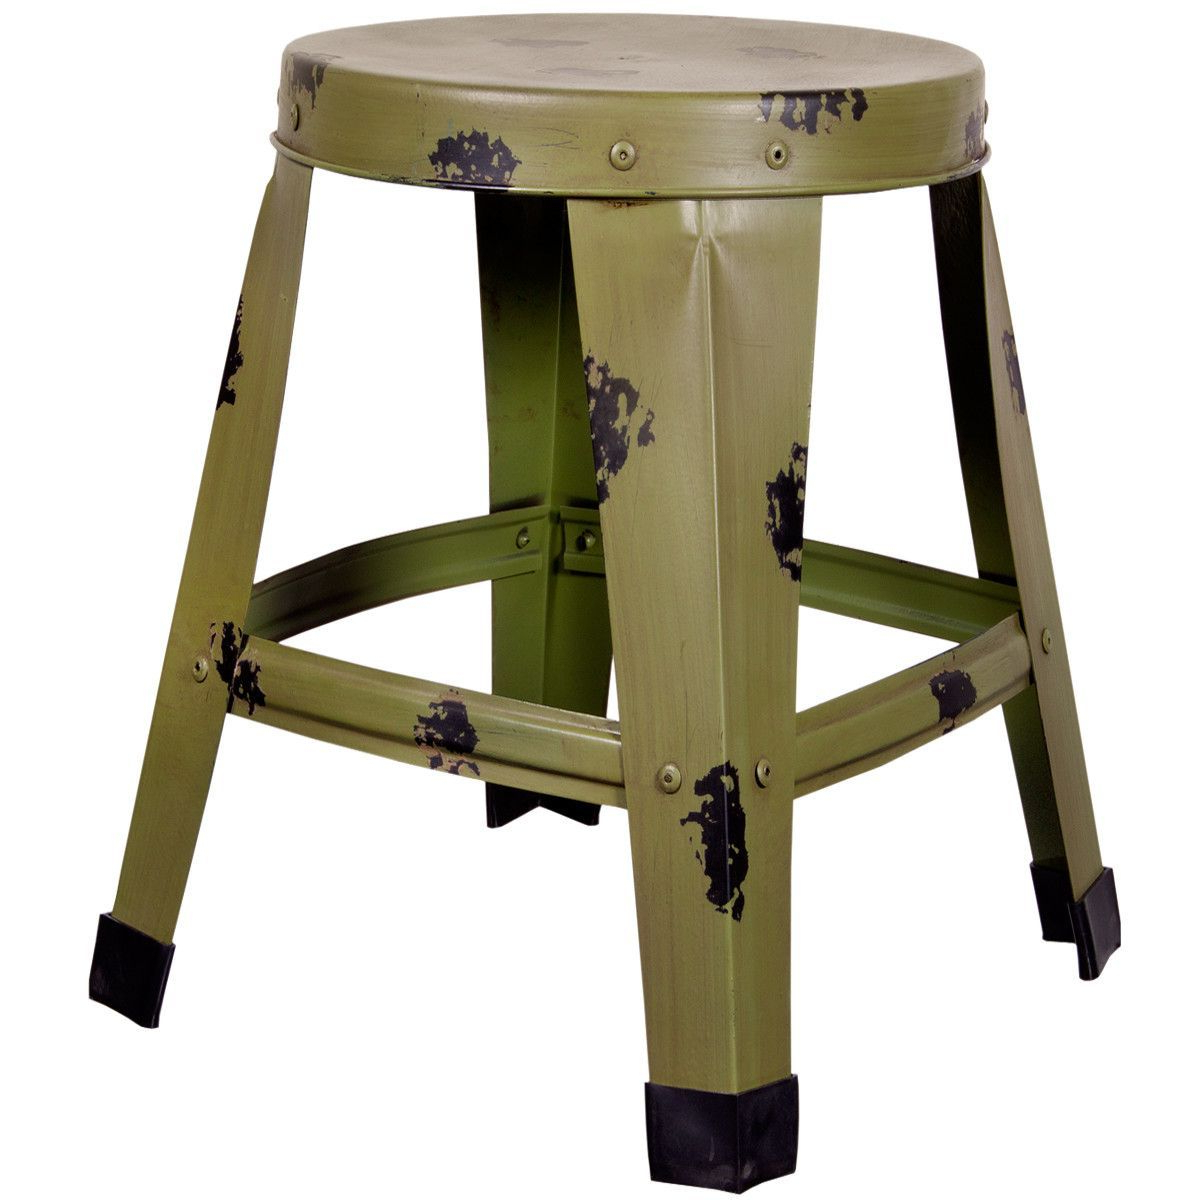 Preferred Messina Garden Stools Set (set Of 2) Intended For Home Essentials And Beyond Antique Medium Metal Stool (View 16 of 30)